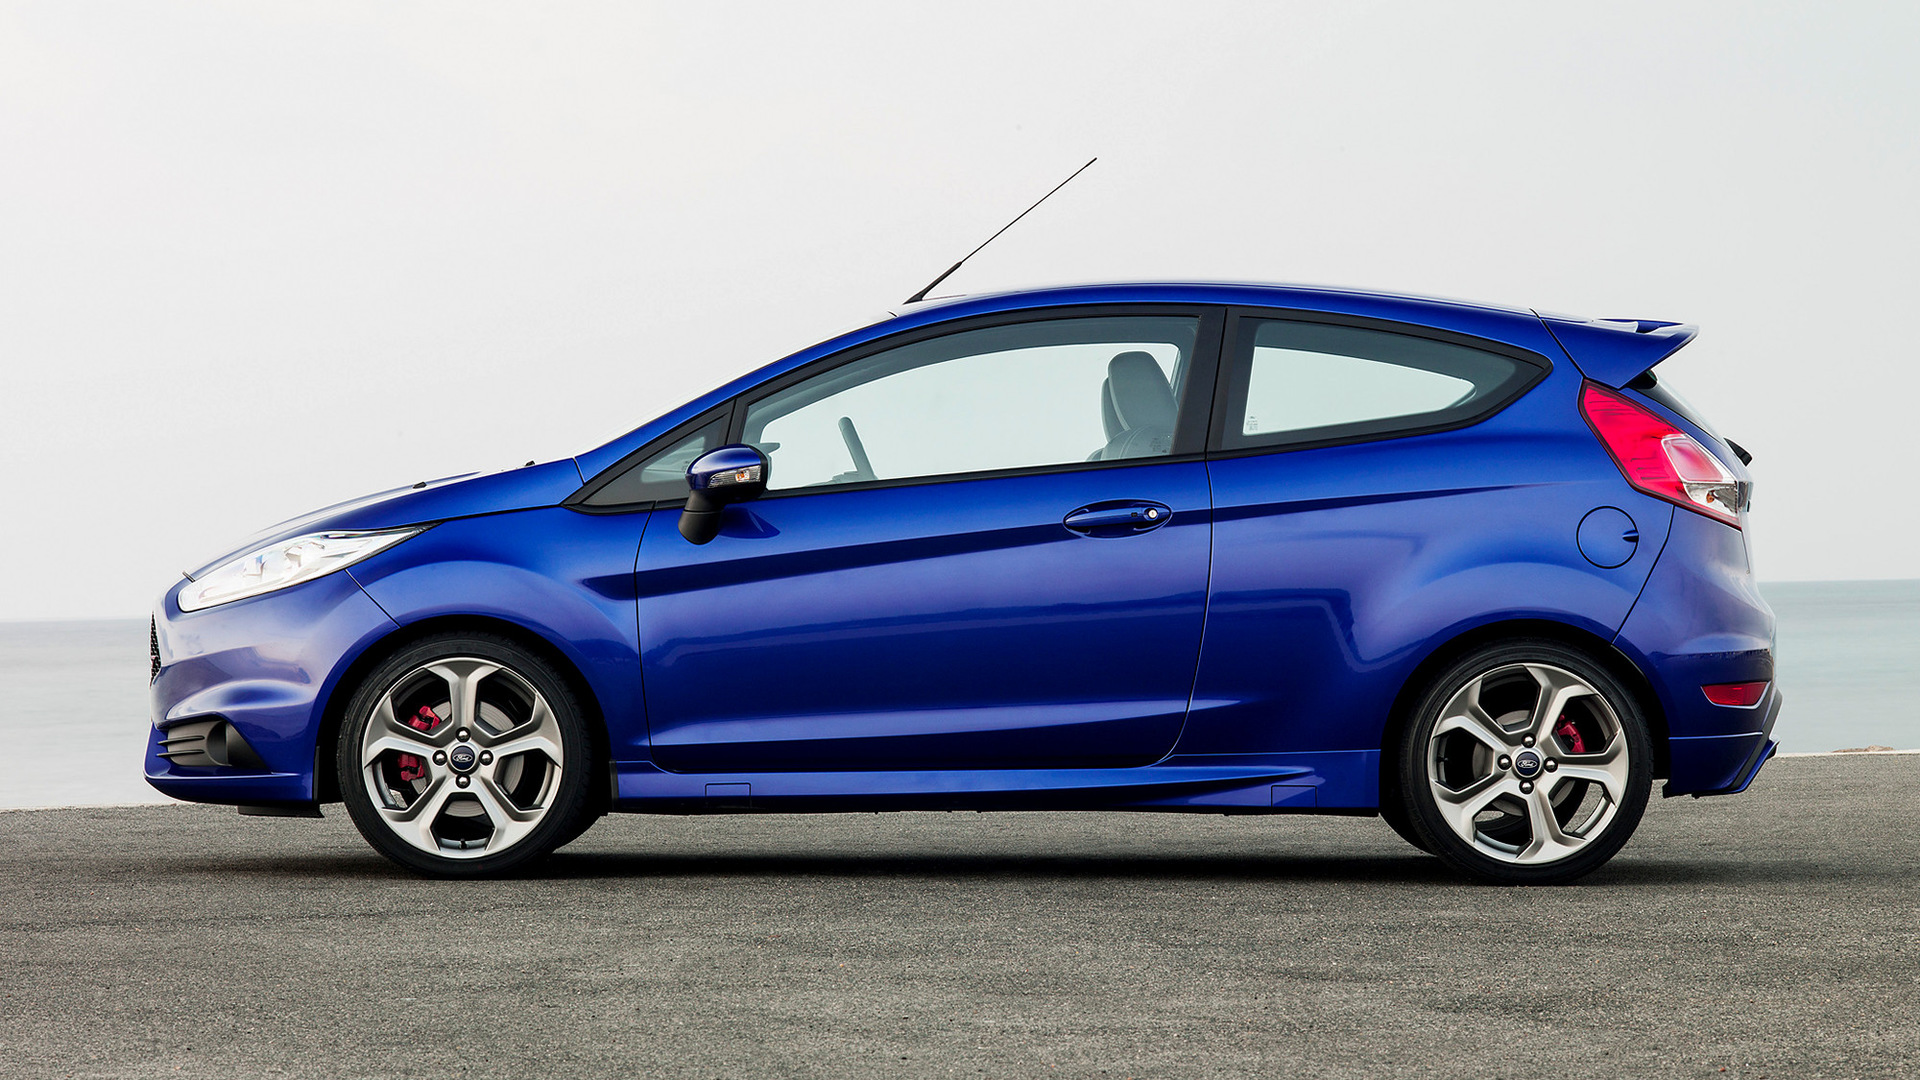 2013 Ford Fiesta St 3 Door Wallpapers And Hd Images